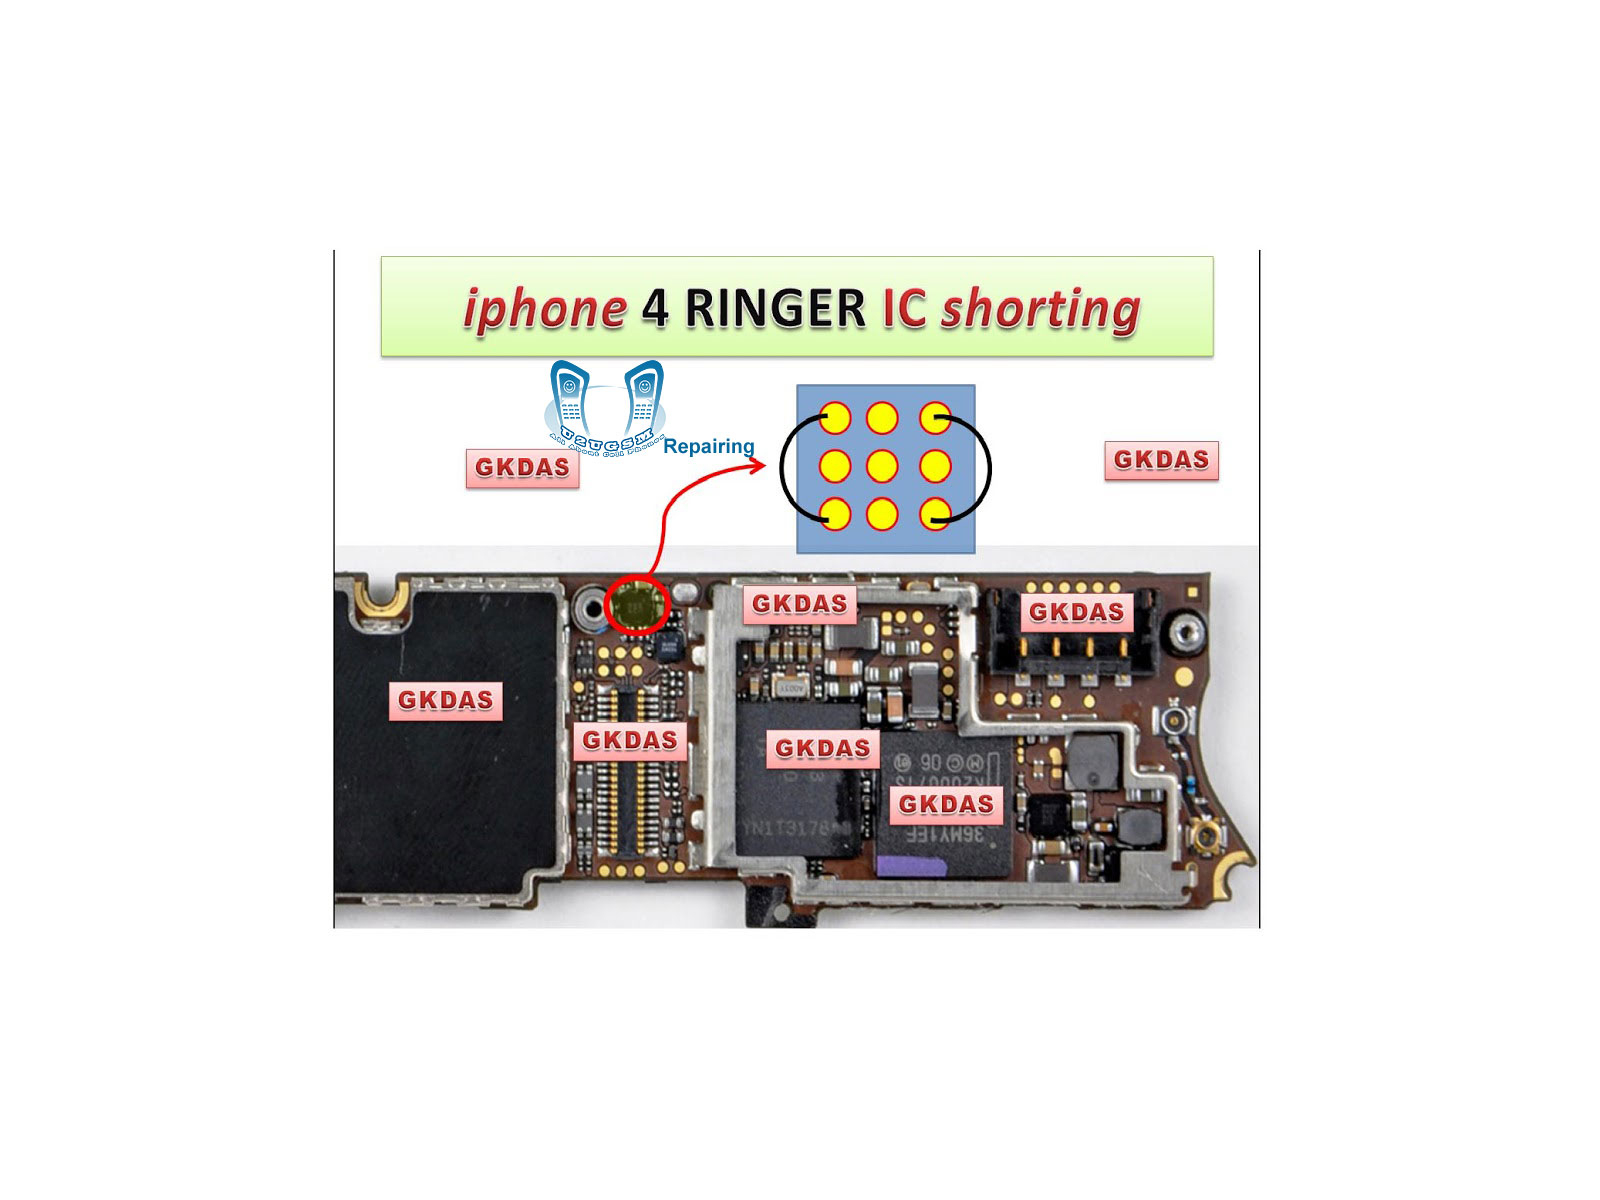 Cable Wiring Diagram For Iphone 4 | Wiring Library - Iphone 4 Usb Cable Wiring Diagram